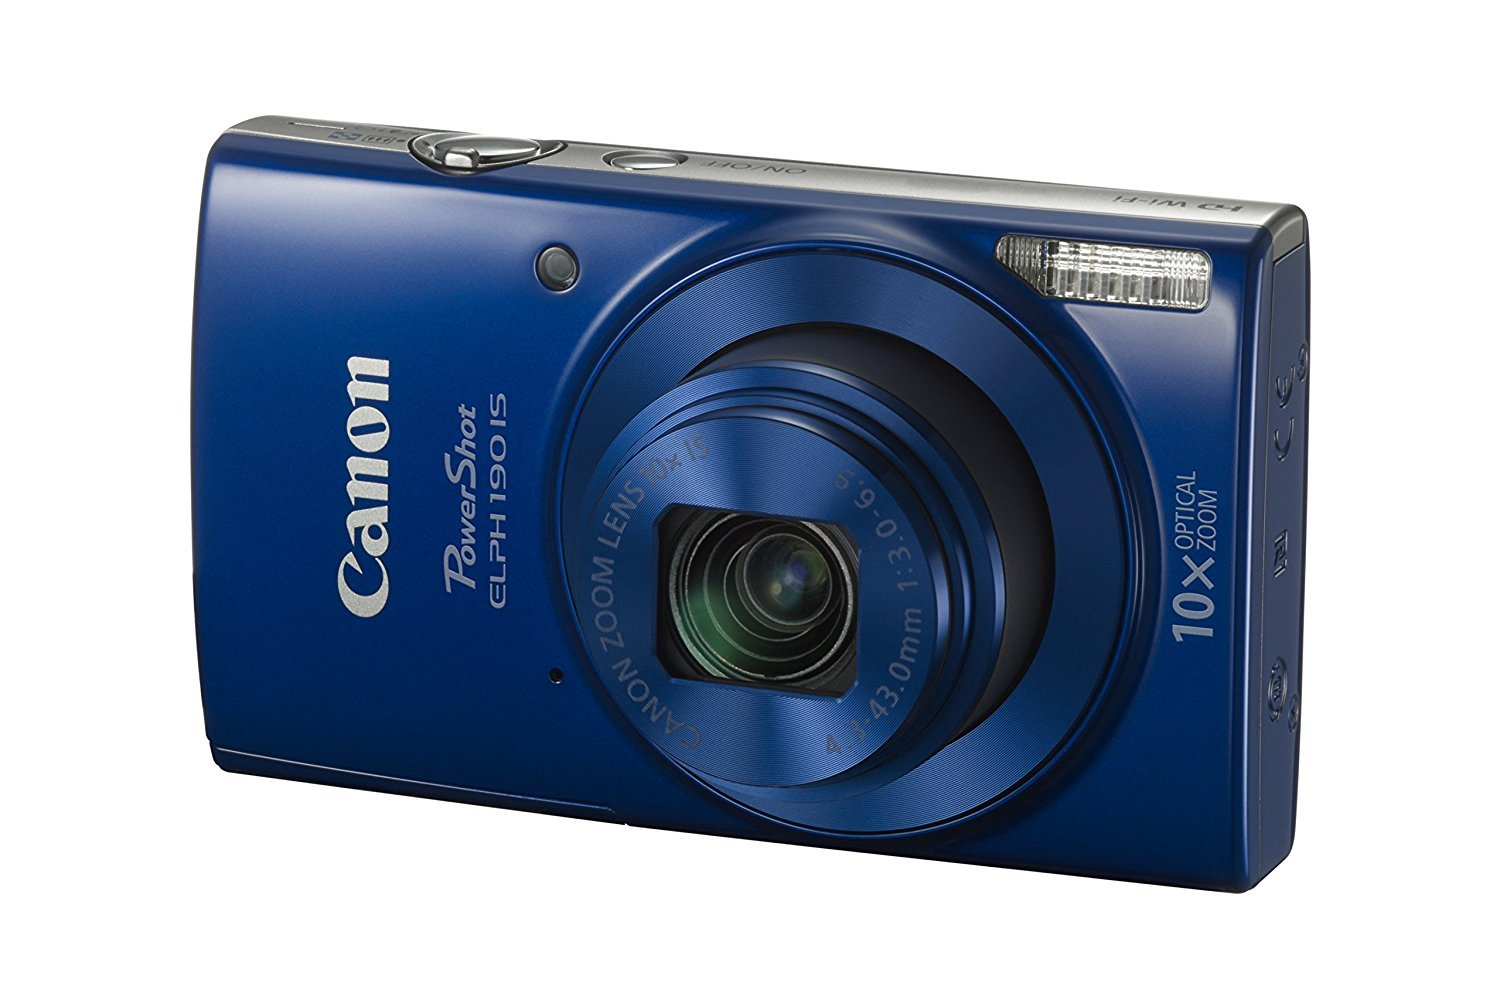 Canon PowerShot ELPH 190 IS with 10x Optical Zoom (24-240mm) and Built-In Wi-Fi with NFC - Blue (Certified Refurbished) by Canon